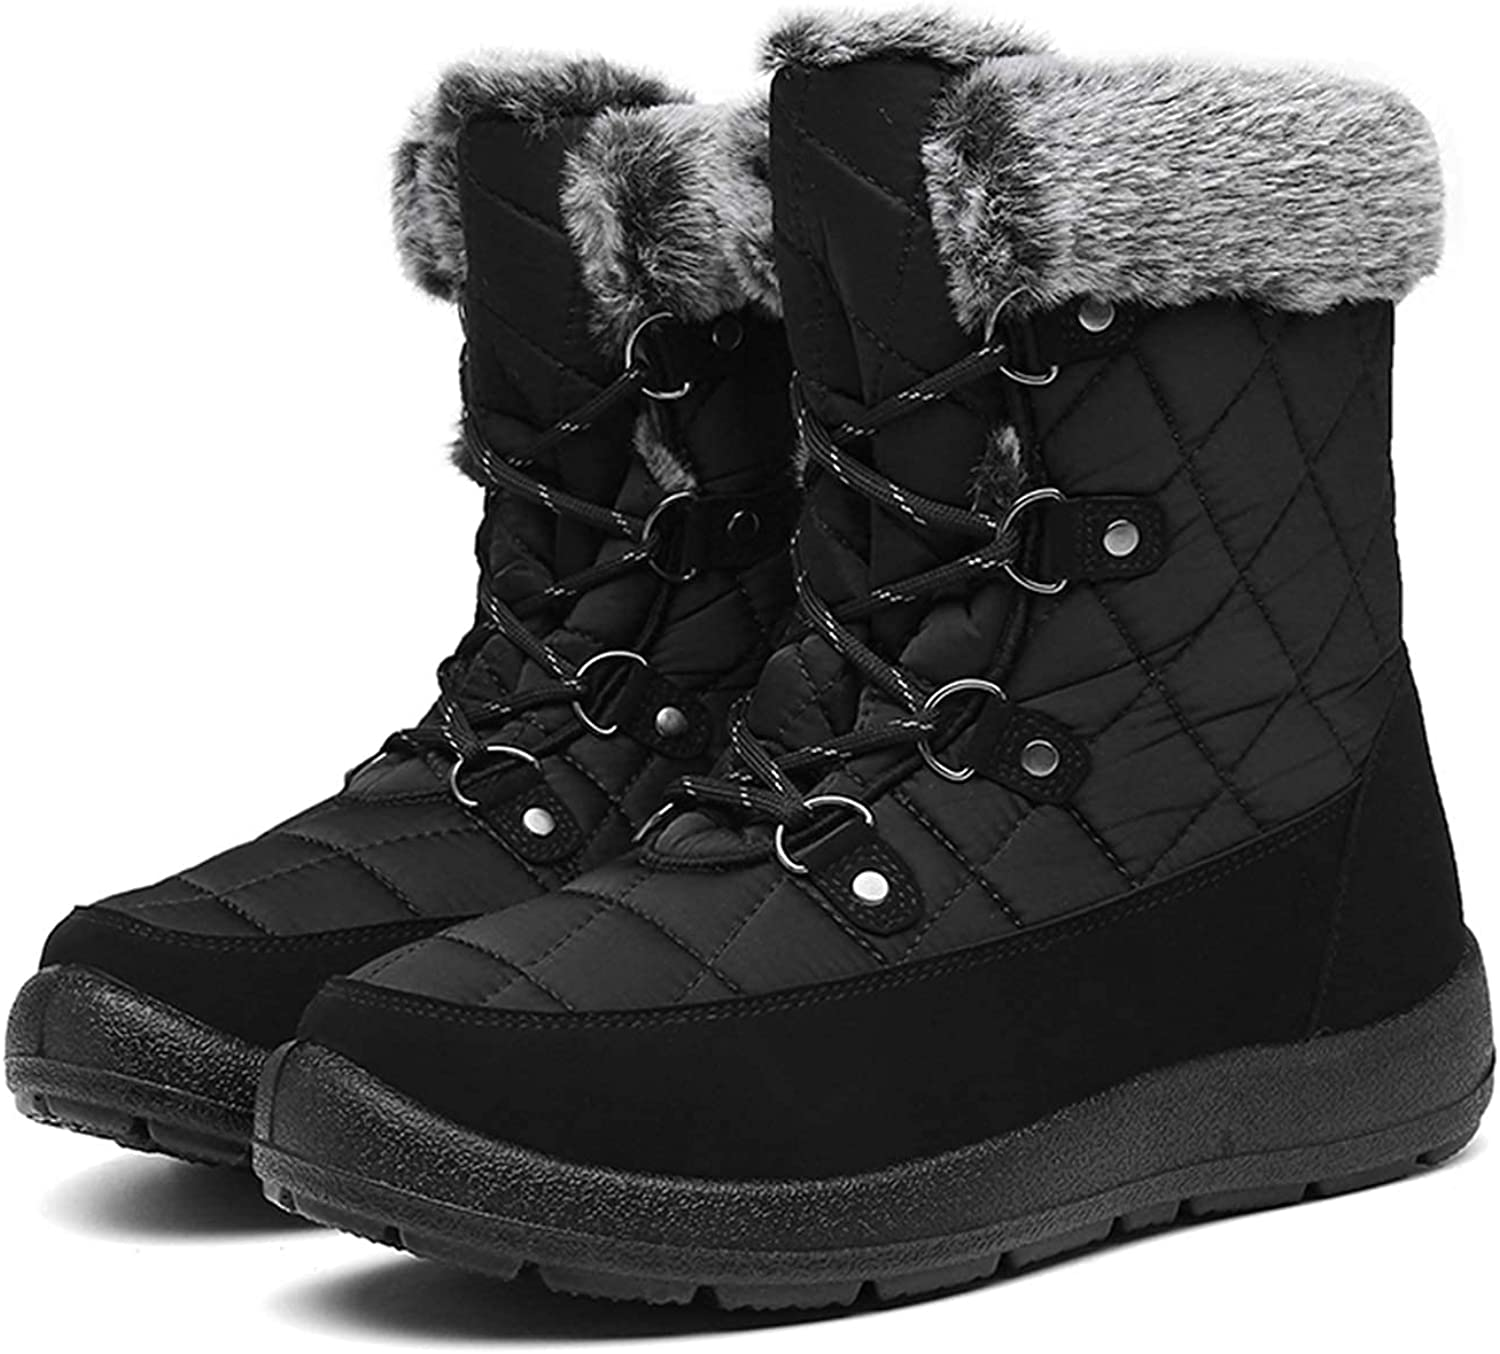 Winter Boots for Women - Soft Comfortable Faux Fur Mid Calf Winter Snow Boots Totes Boots Lace up Snow Boots Winter Boots with Insulated Black for Outdoor